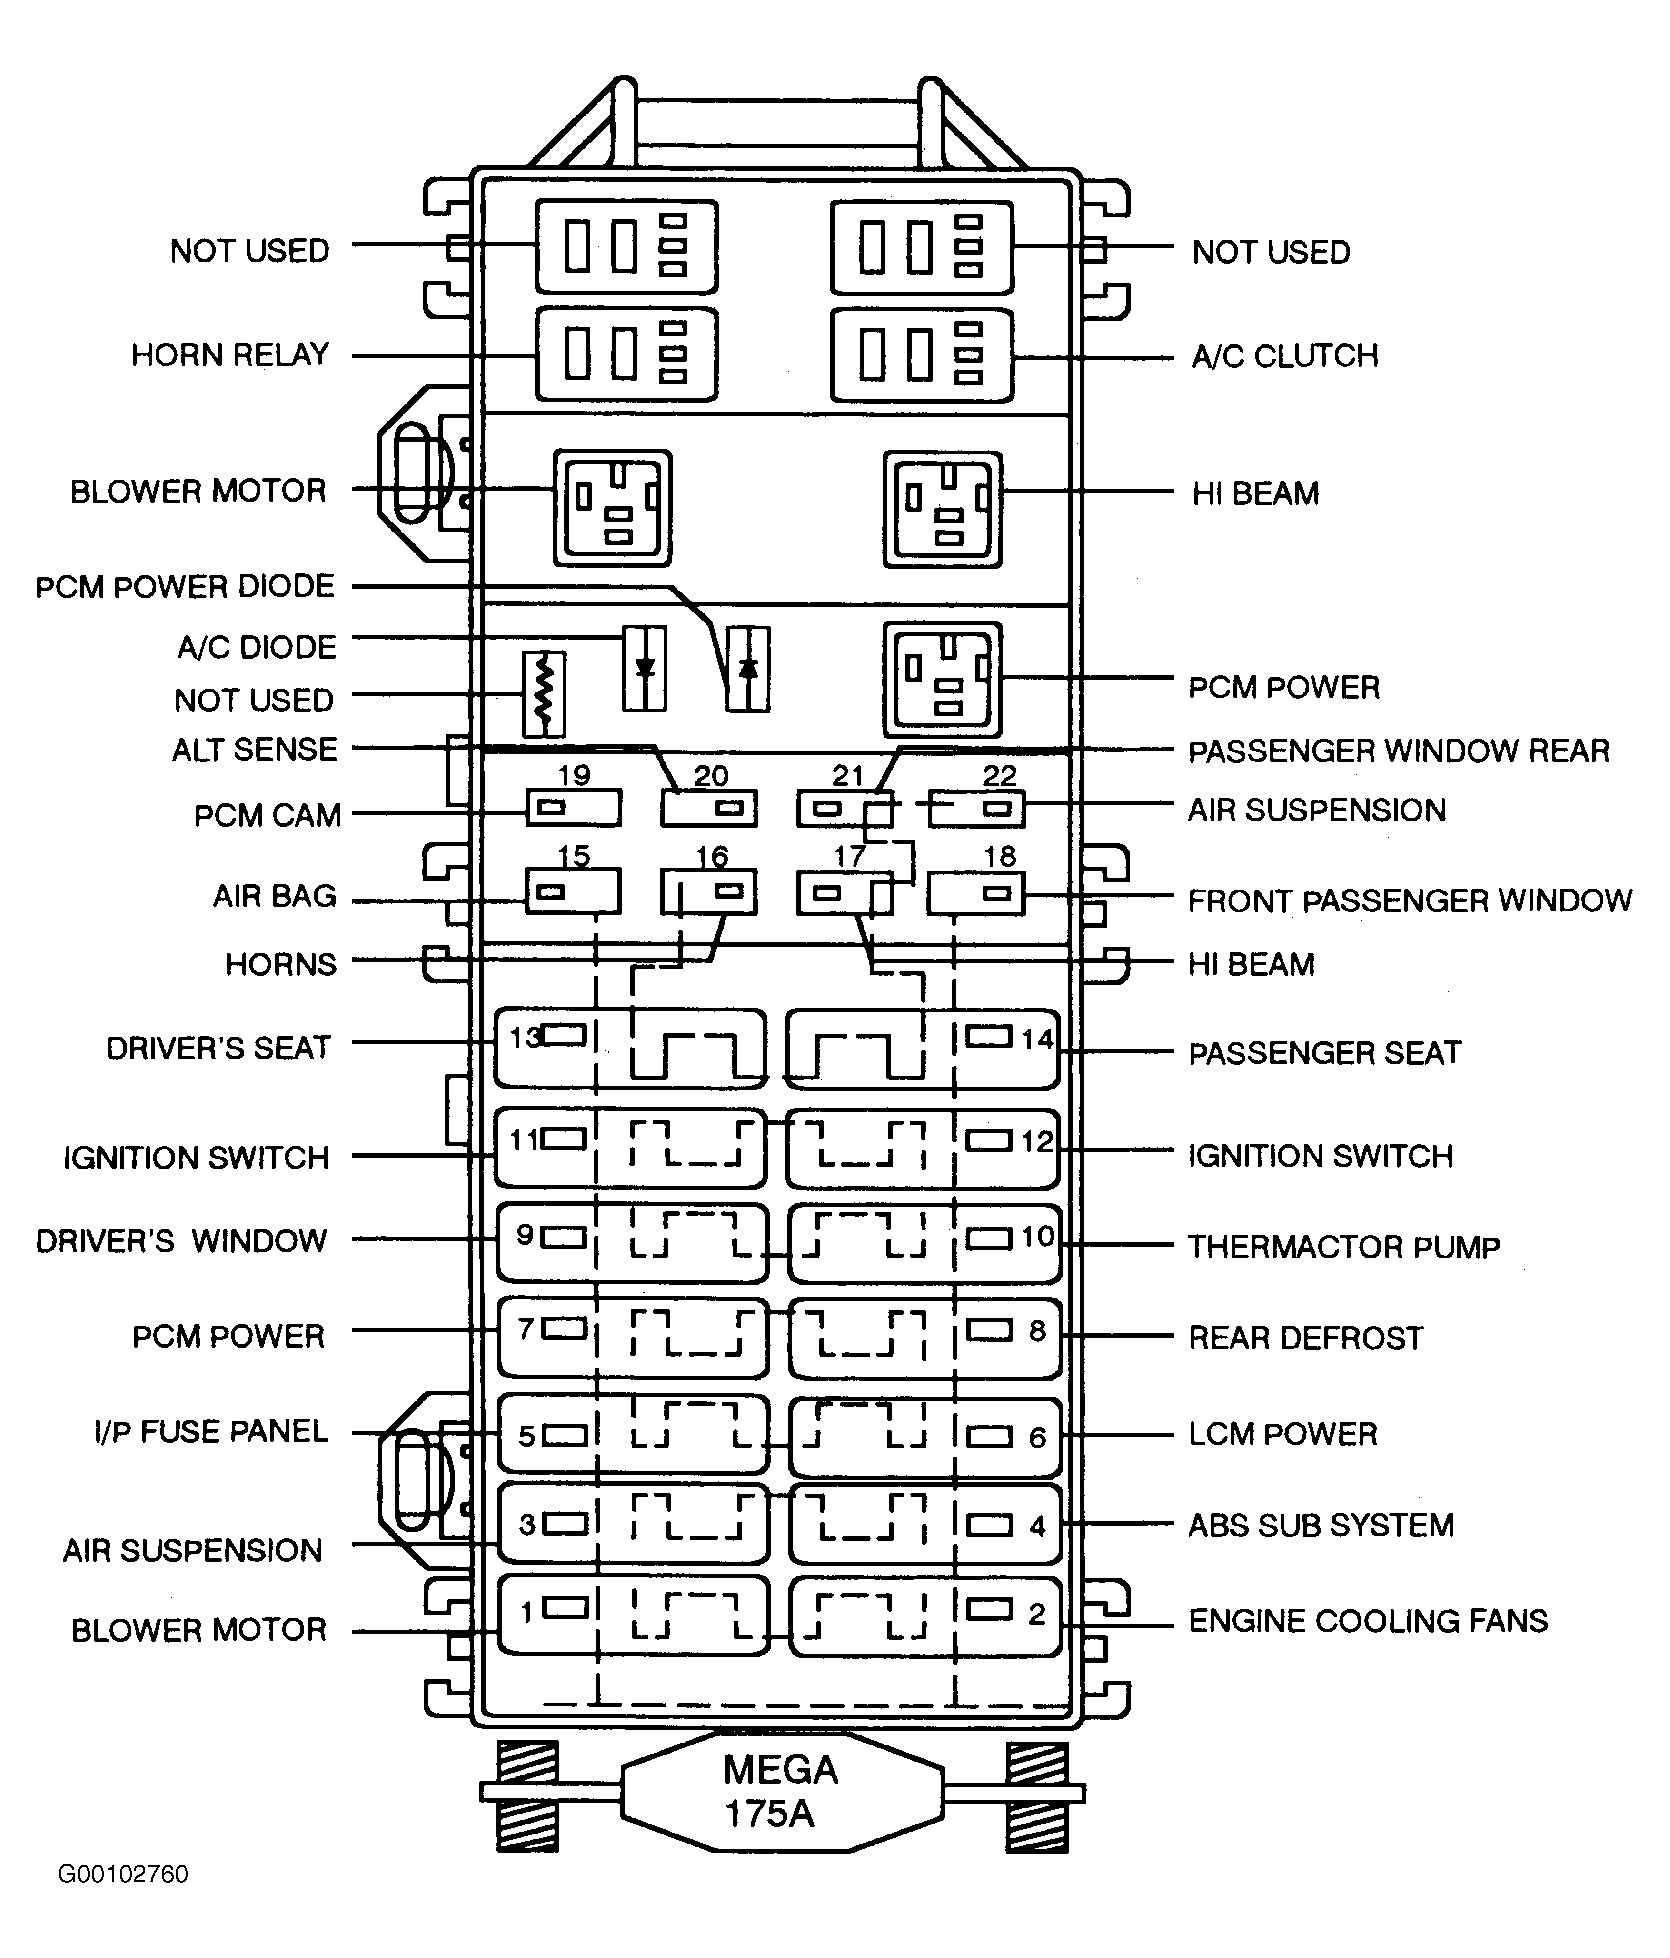 hight resolution of continental engine diagram wiring diagram general home 1997 lincoln continental engine diagram